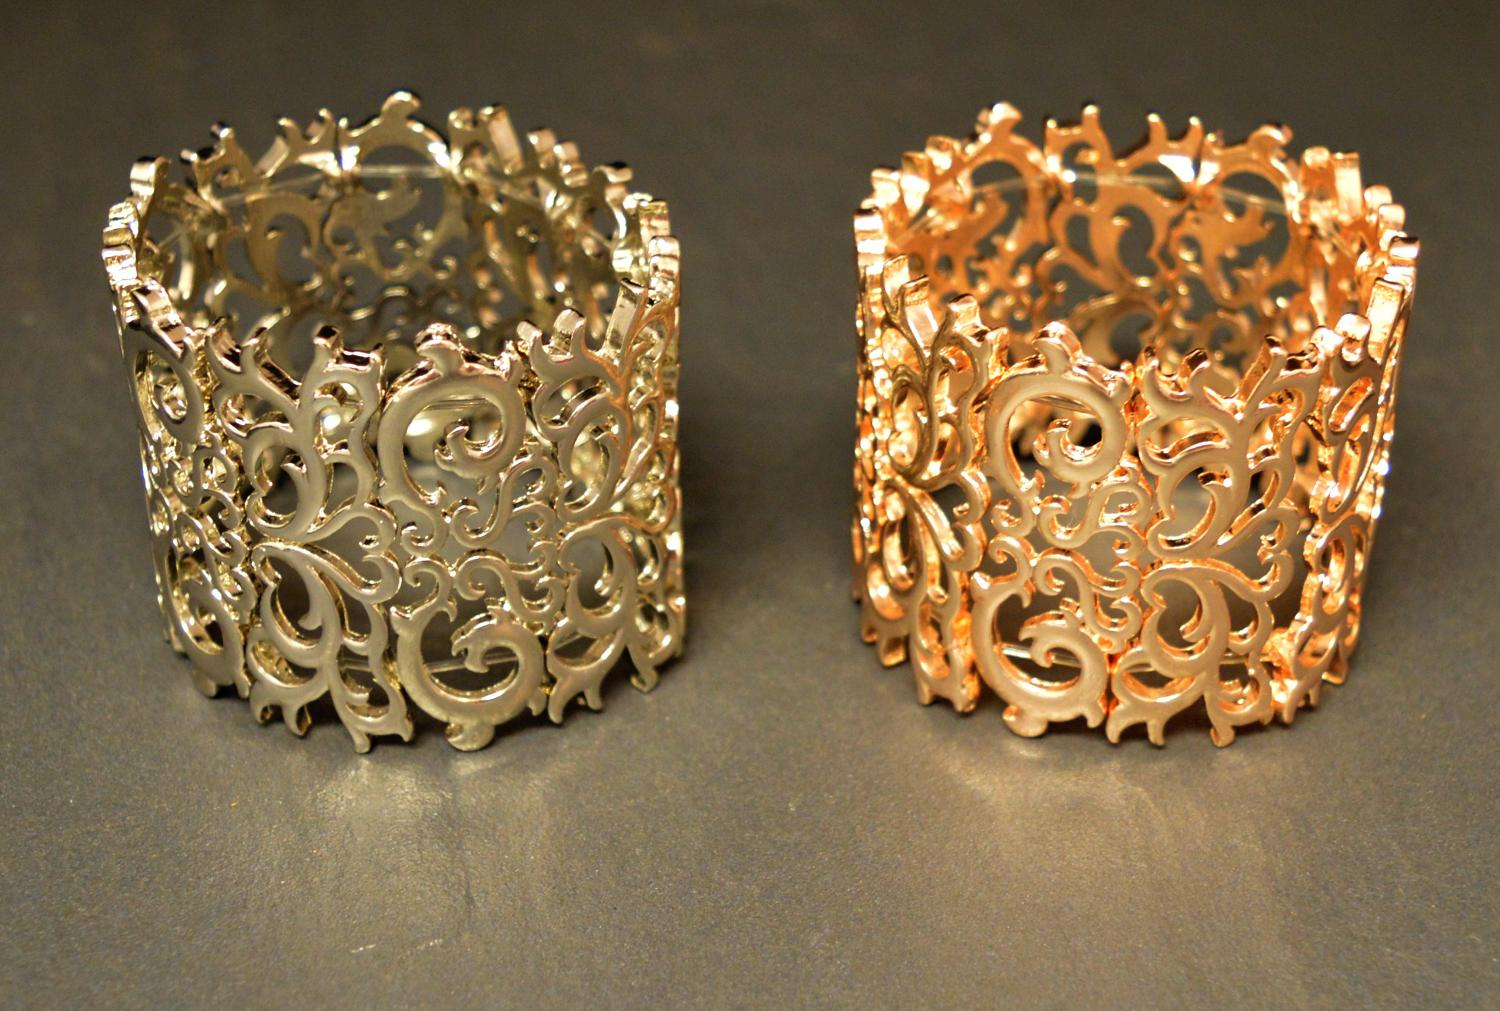 Large Filigree Elasticated Bracelet